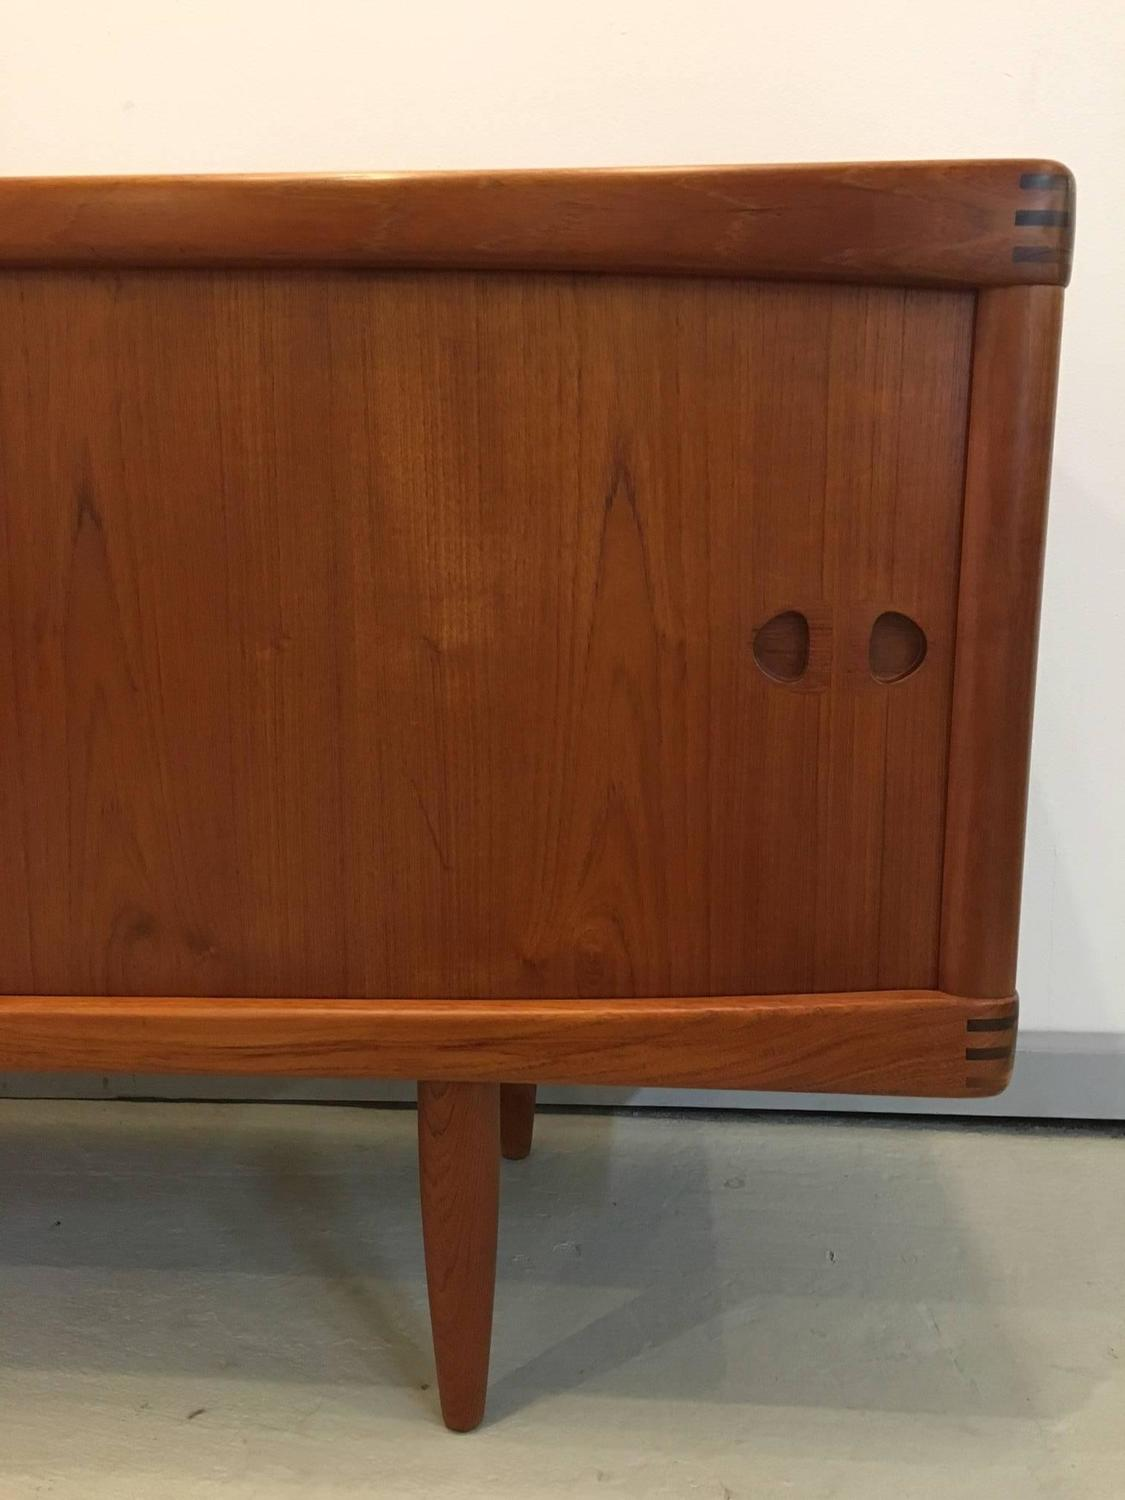 danish modern h w klein sideboard for sale at 1stdibs. Black Bedroom Furniture Sets. Home Design Ideas